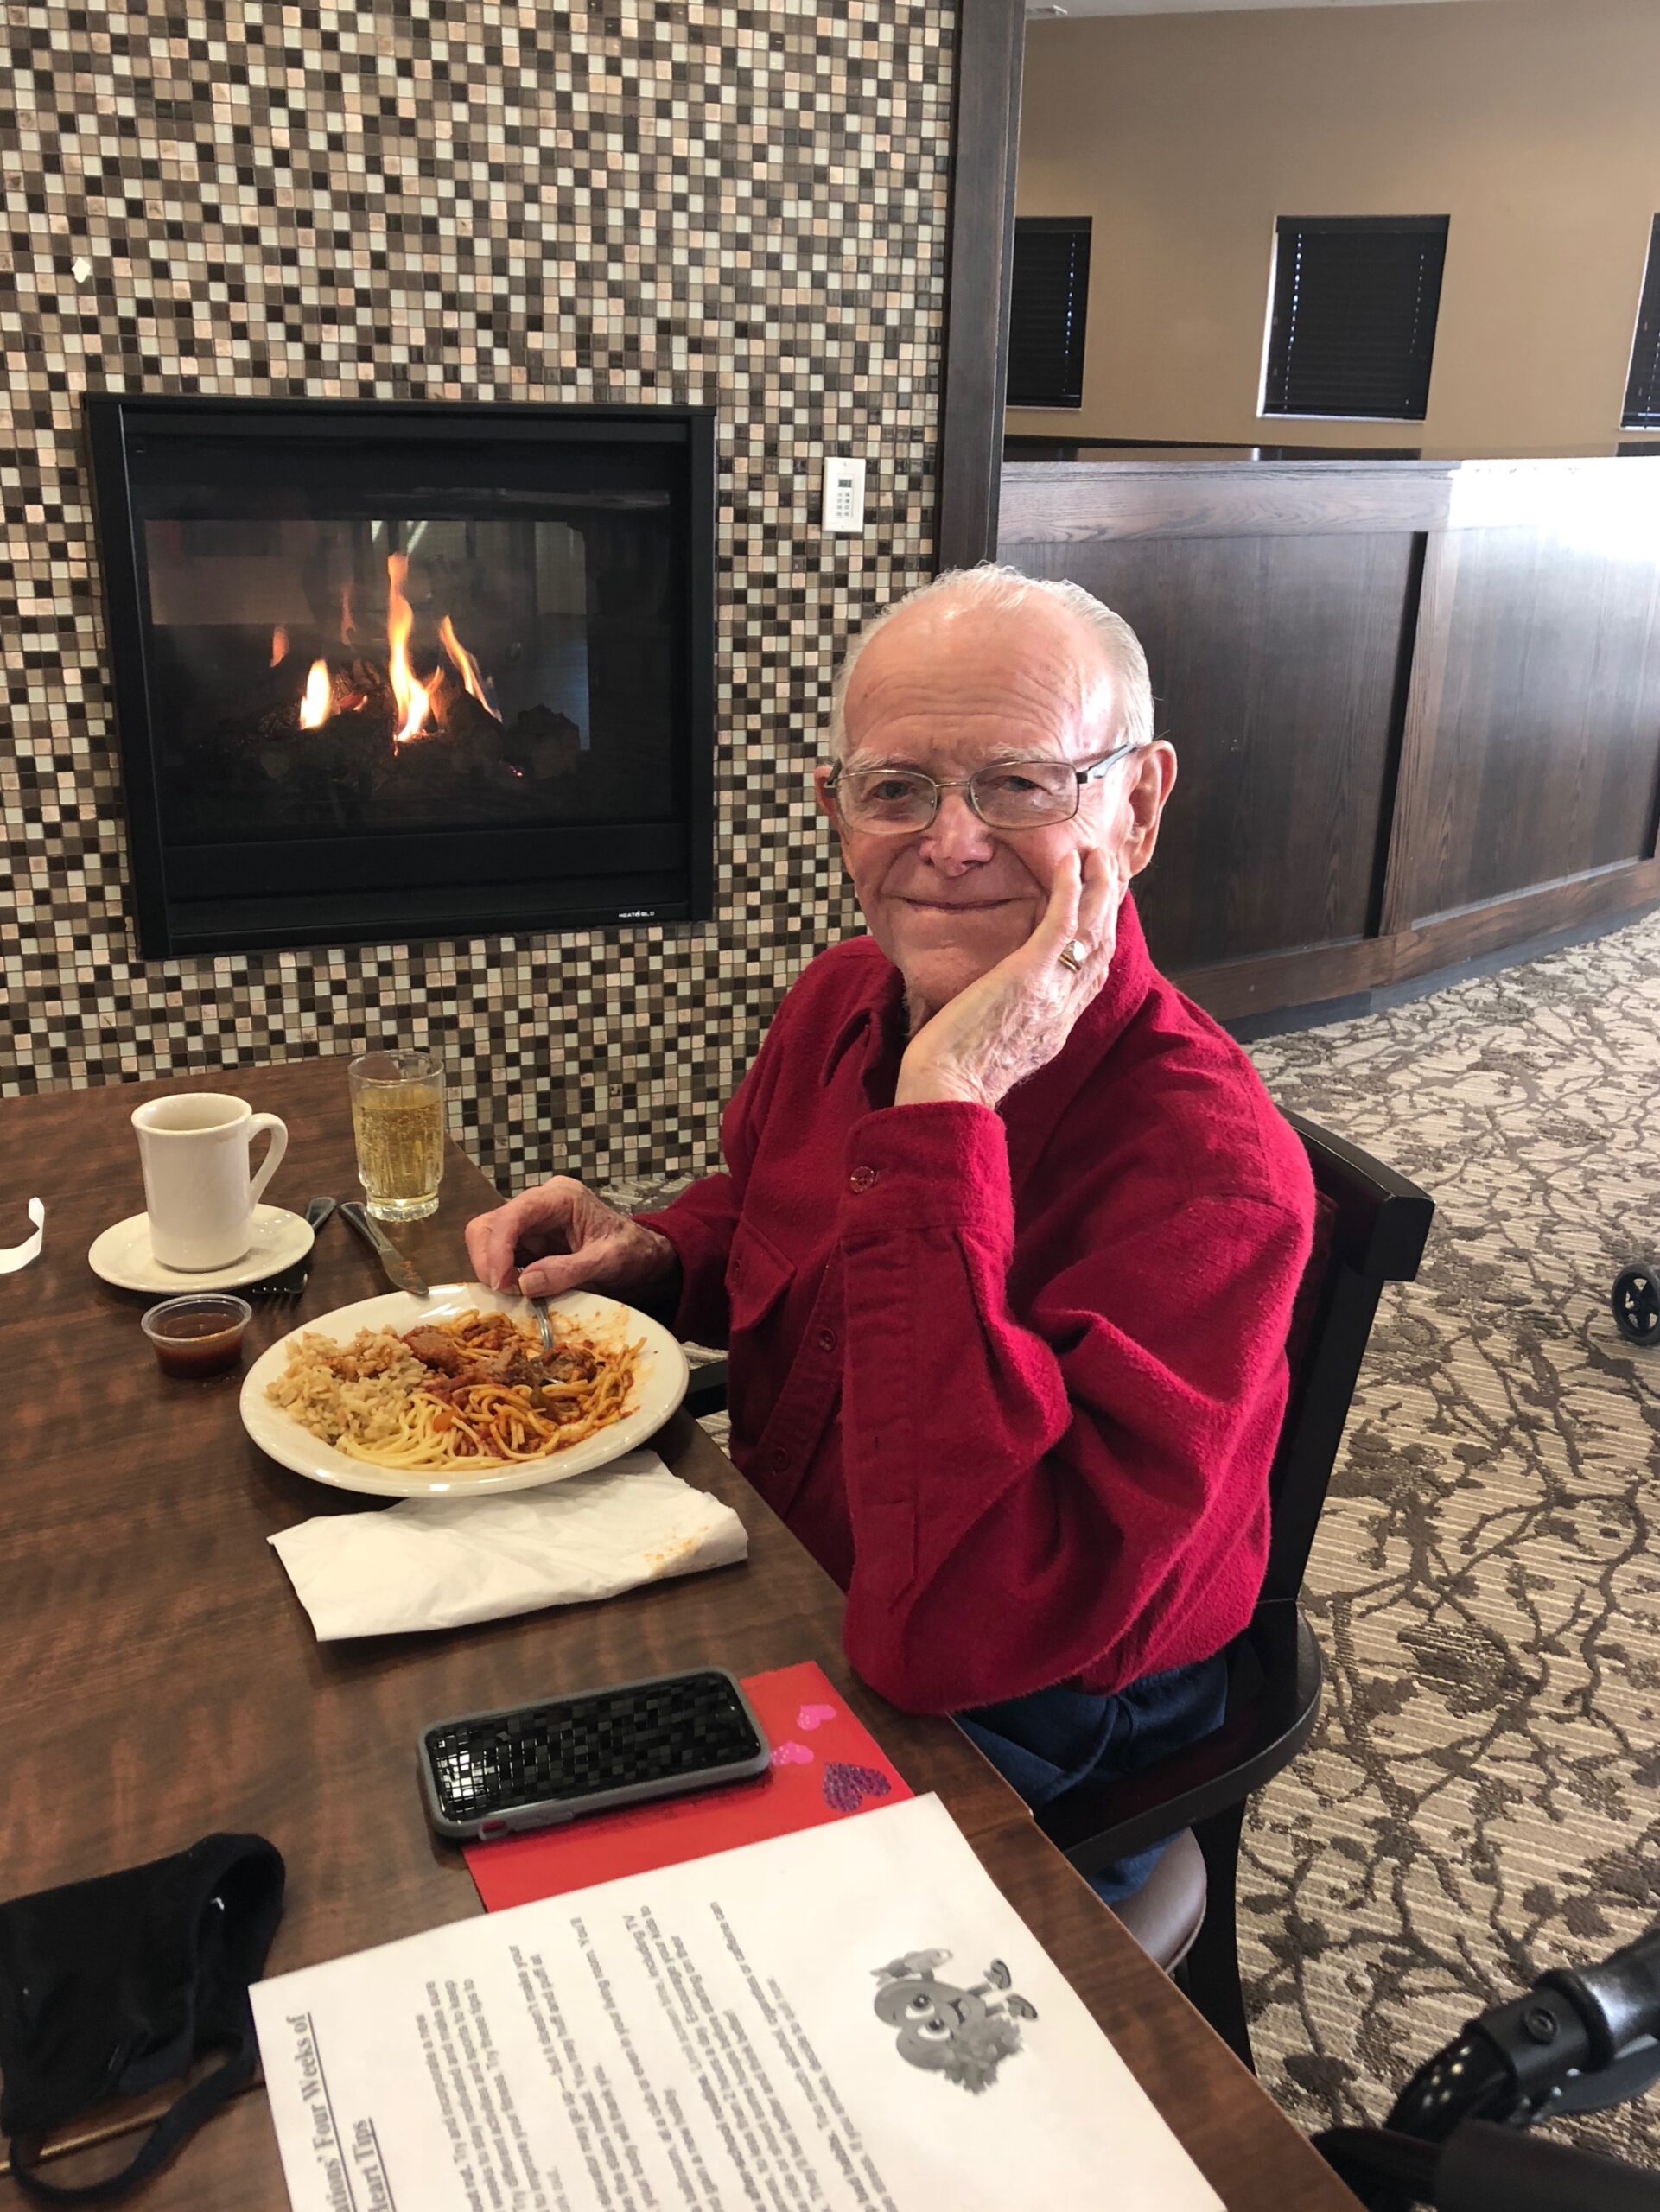 Celebrating Heart Healthy Month- Residents wore the color Red to lunch on Friday, February 5th to raise awareness of being heart healthy! Bud found the heart healthy tips the residents received just lovely!